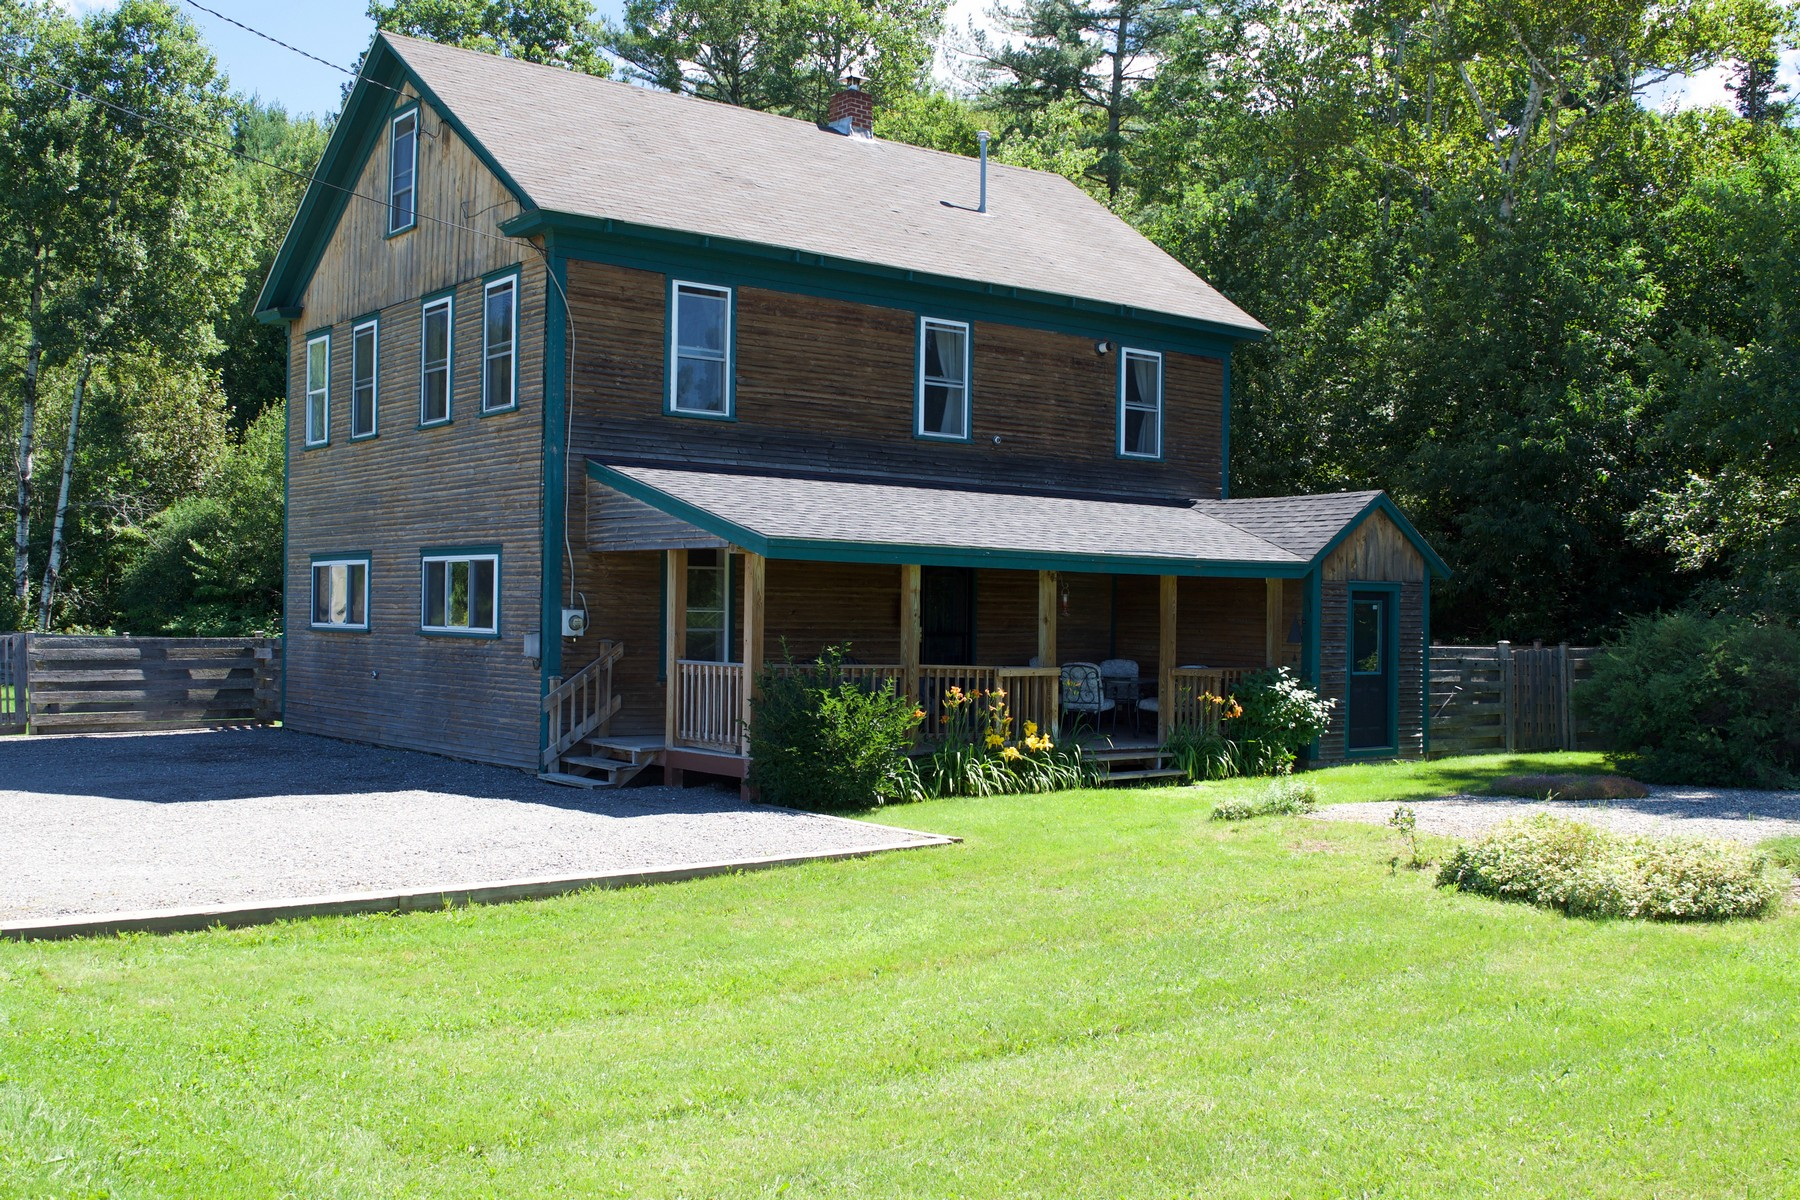 Single Family Home for Sale at 10 Tousant Hill Road, Greensboro 10 Tousant Hill Rd Greensboro, Vermont 05842 United States